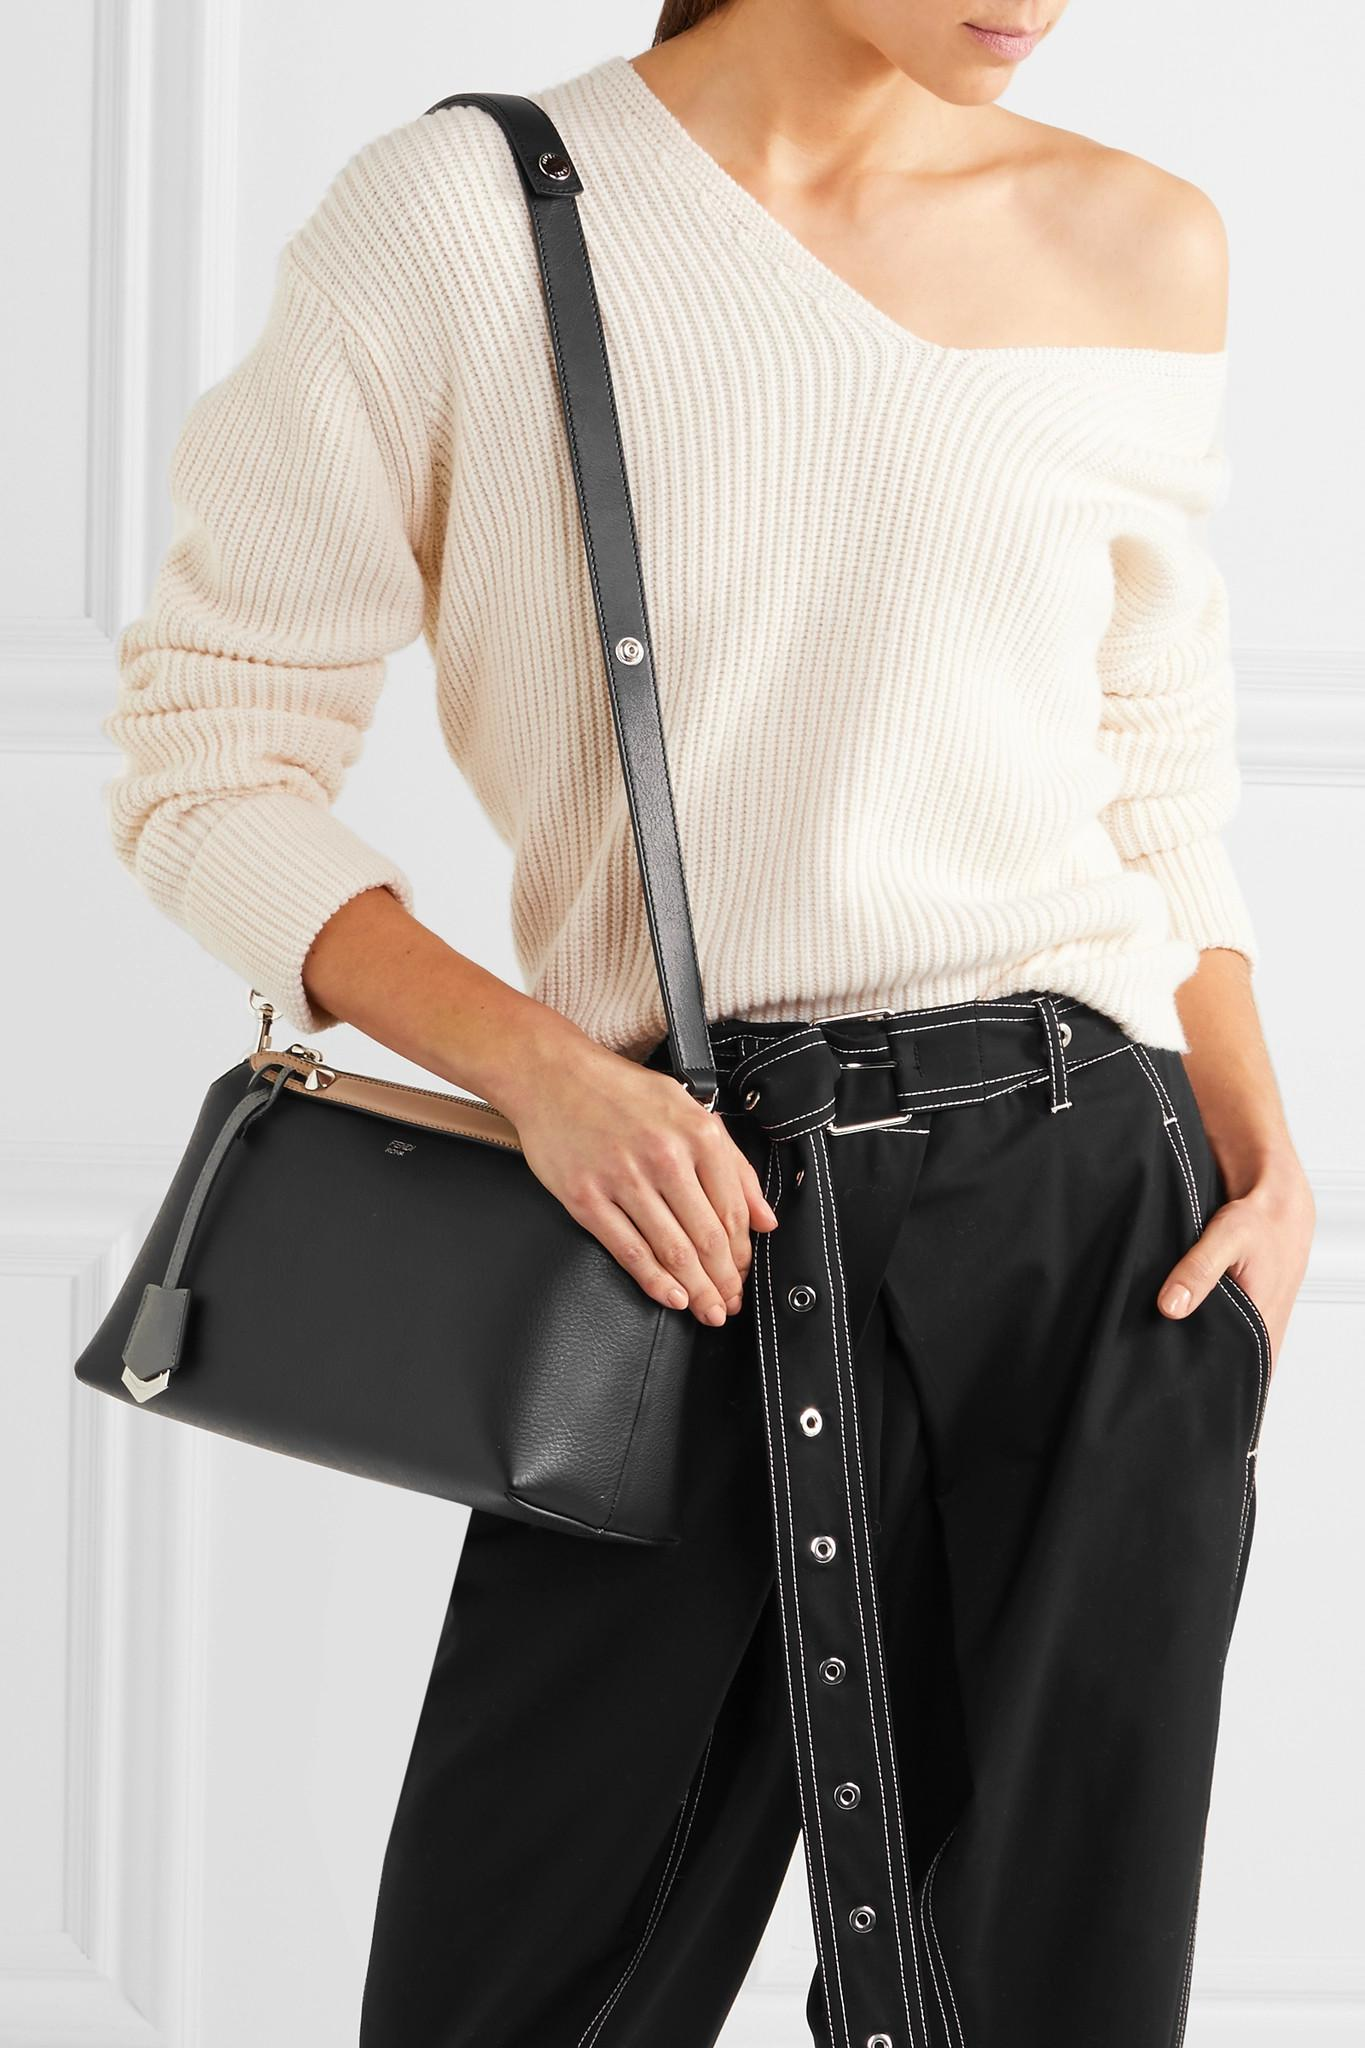 27997158fe Fendi - Black By The Way Small Color-block Textured-leather Shoulder Bag -.  View fullscreen